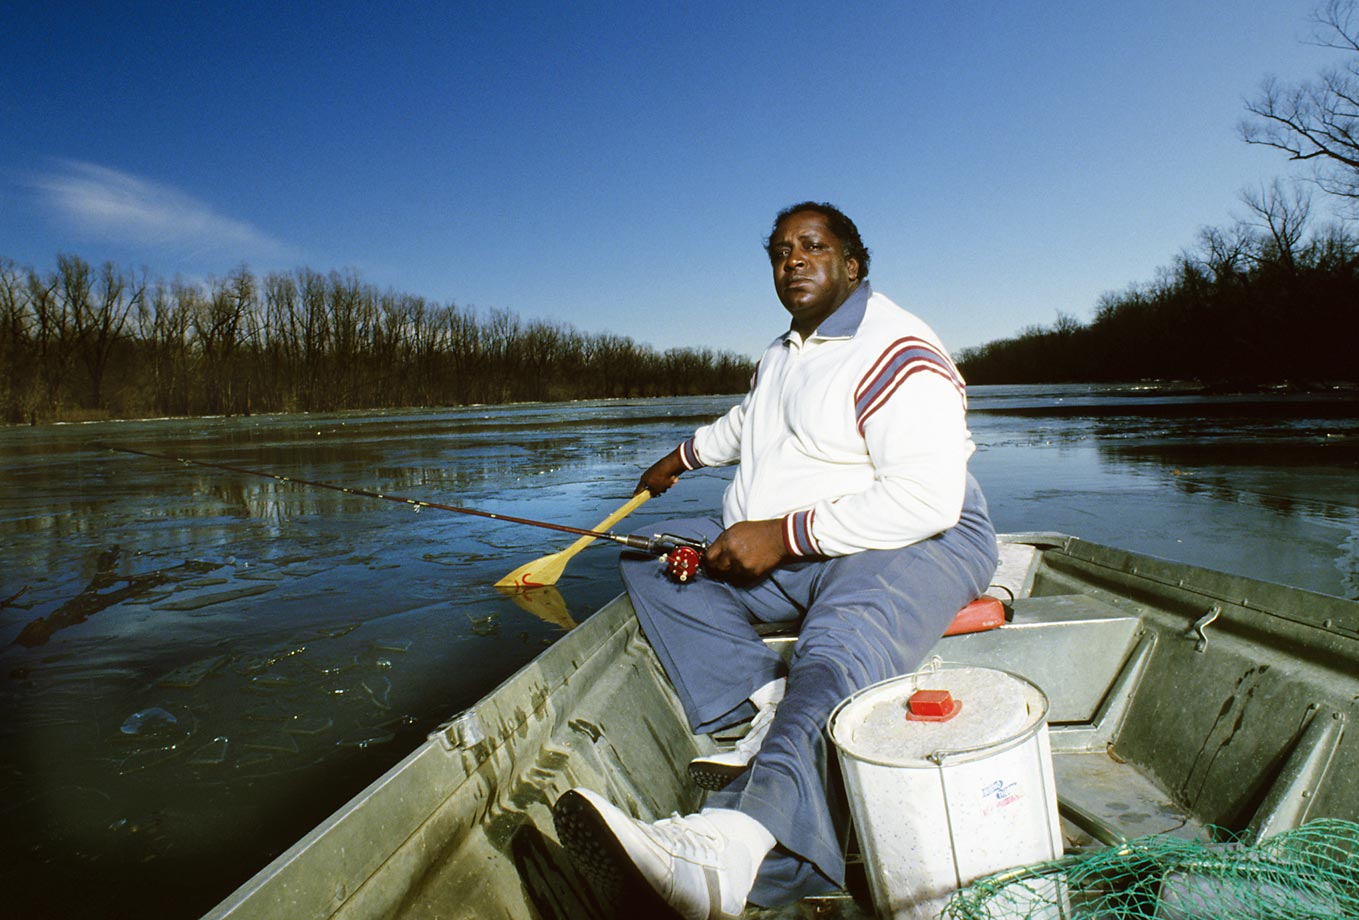 Former Green Bay Packers player Bob Brown fishing in 1985.